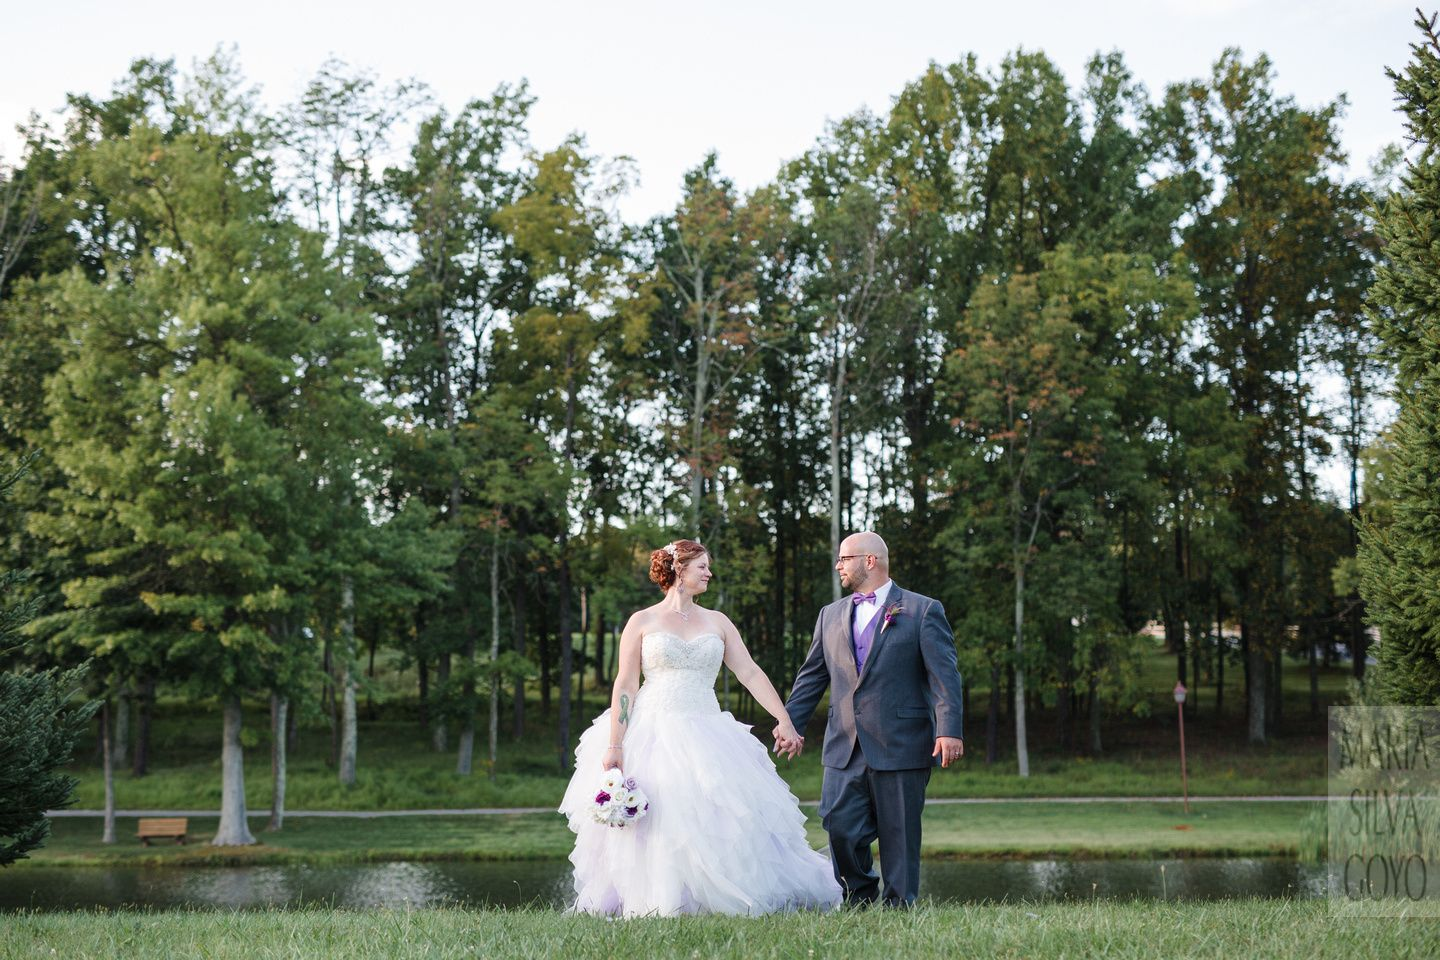 Bride and Groom with purple details @ Roundtop Mountain Resort Wedding - Lewisberry PA